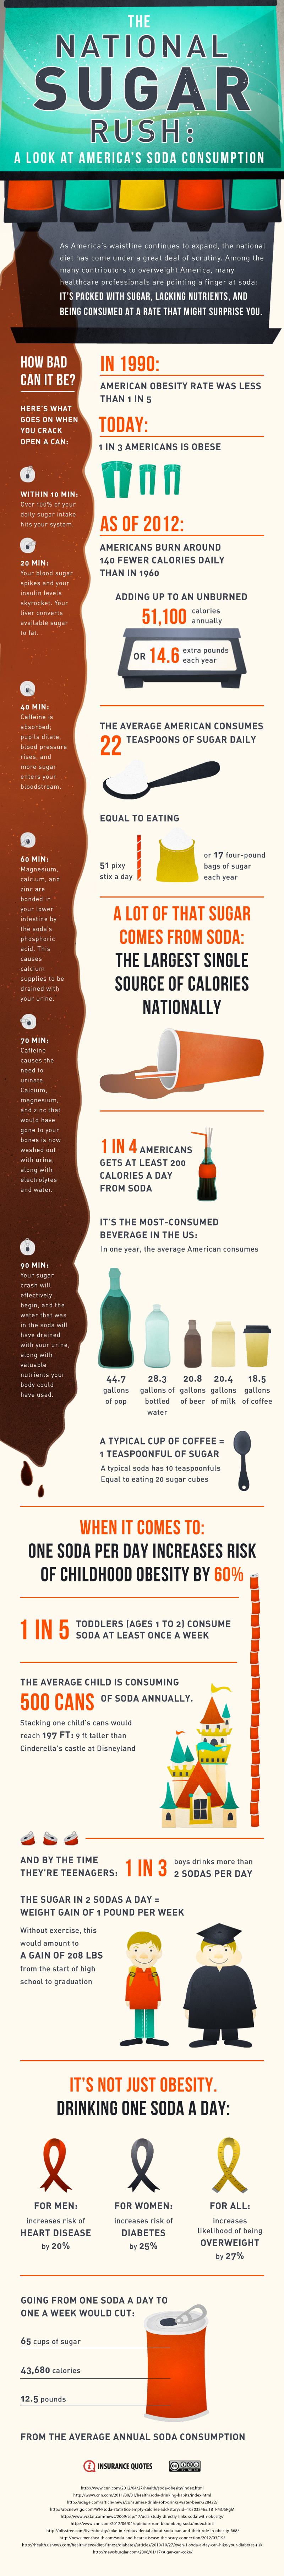 Soda Statistics and Facts